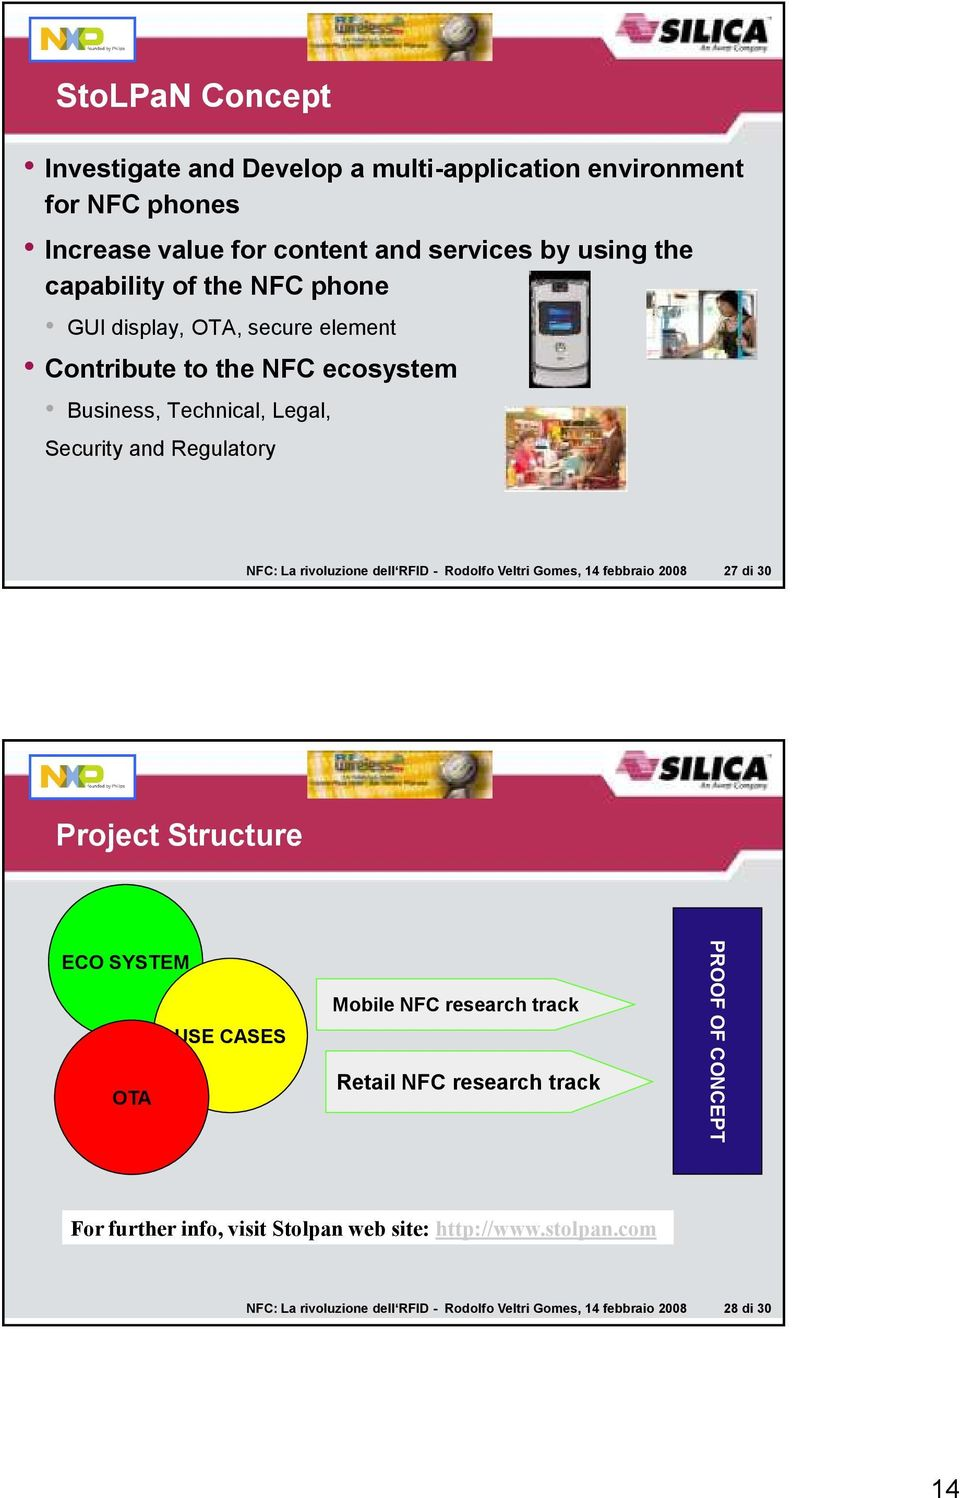 RFID - Rodolfo Veltri Gomes, 14 febbraio 2008 27 di 30 Project Structure ECO SYSTEM OTA USE CASES Mobile NFC research track Retail NFC research track PROOF